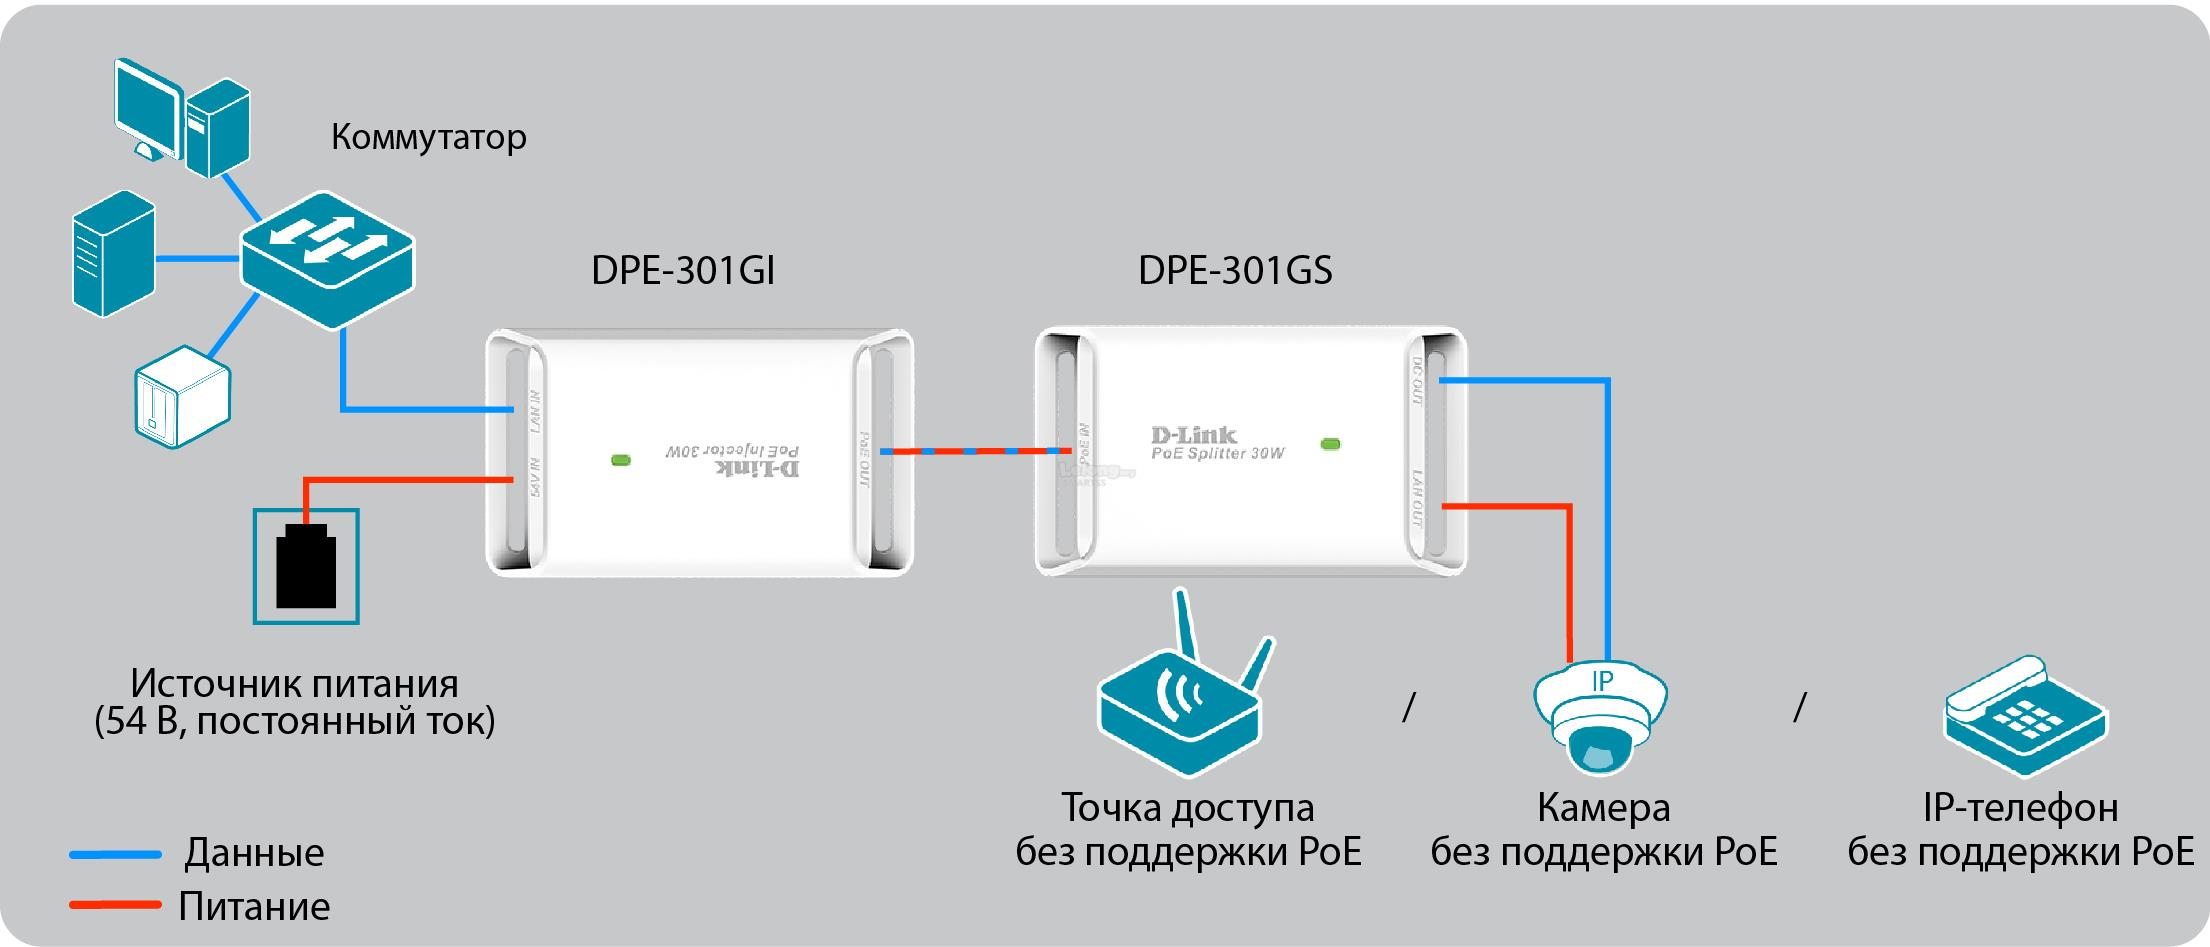 NW. D-LINK ADAPTER NETWORK HIGH POWER POE SPLITTER DPE-301GS